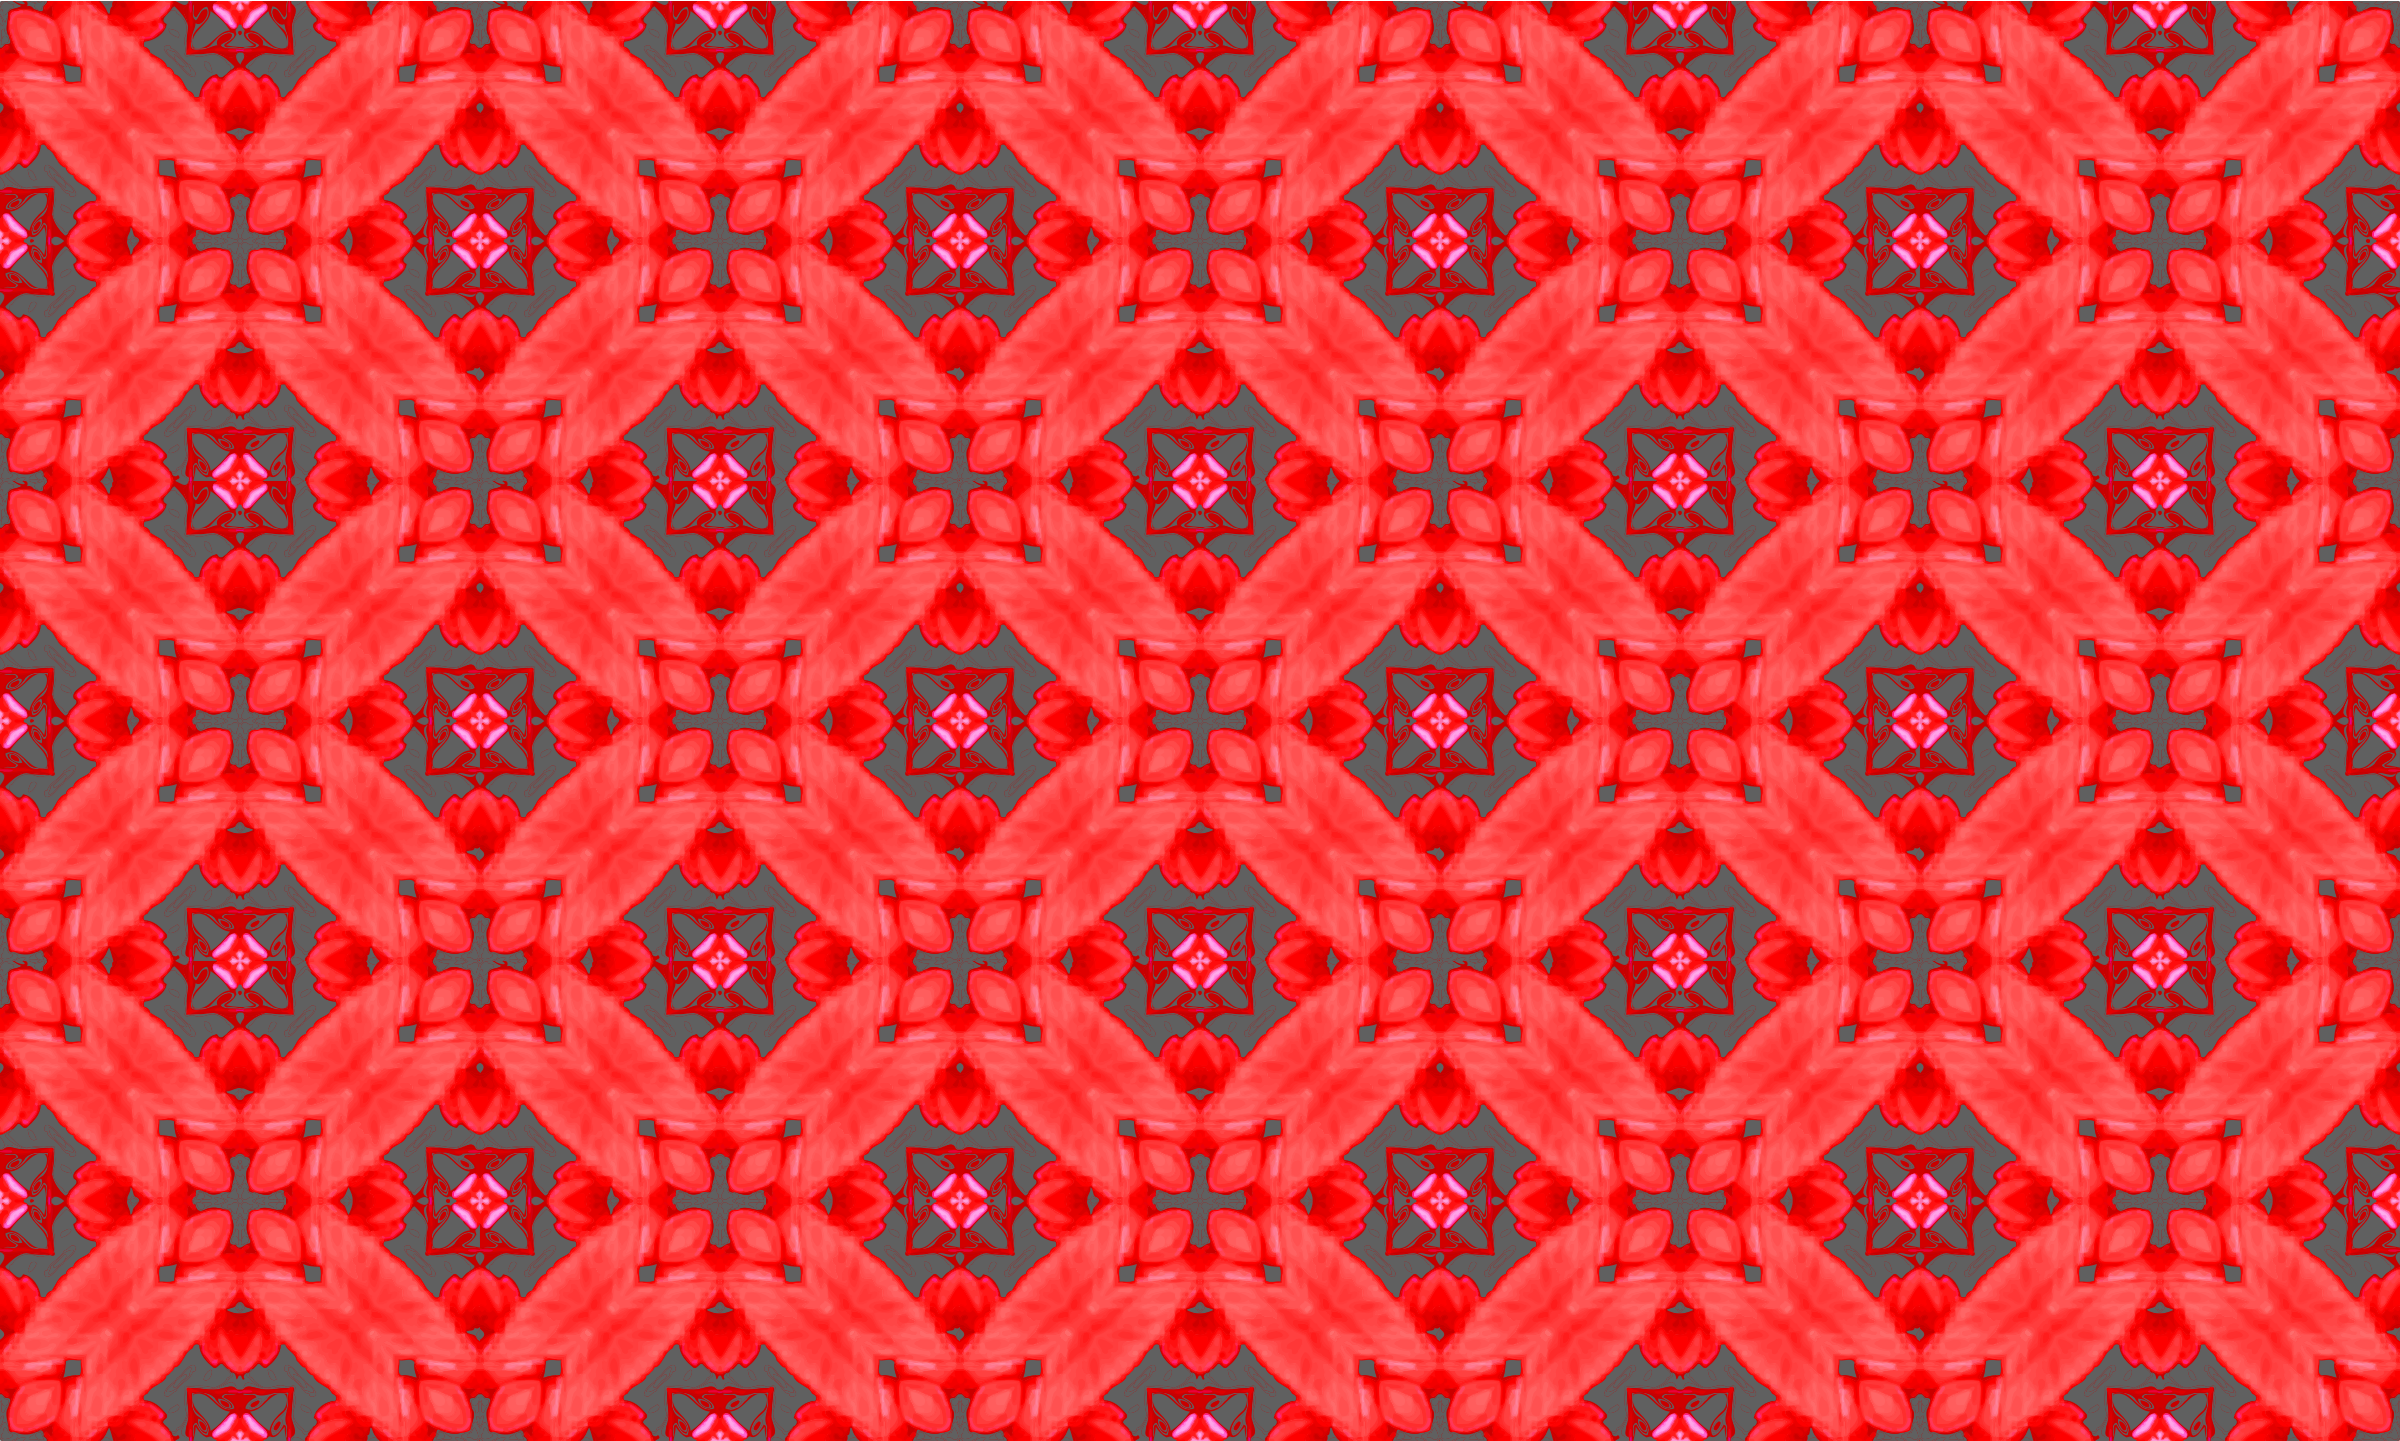 Background pattern 272 (colour 3) by Firkin